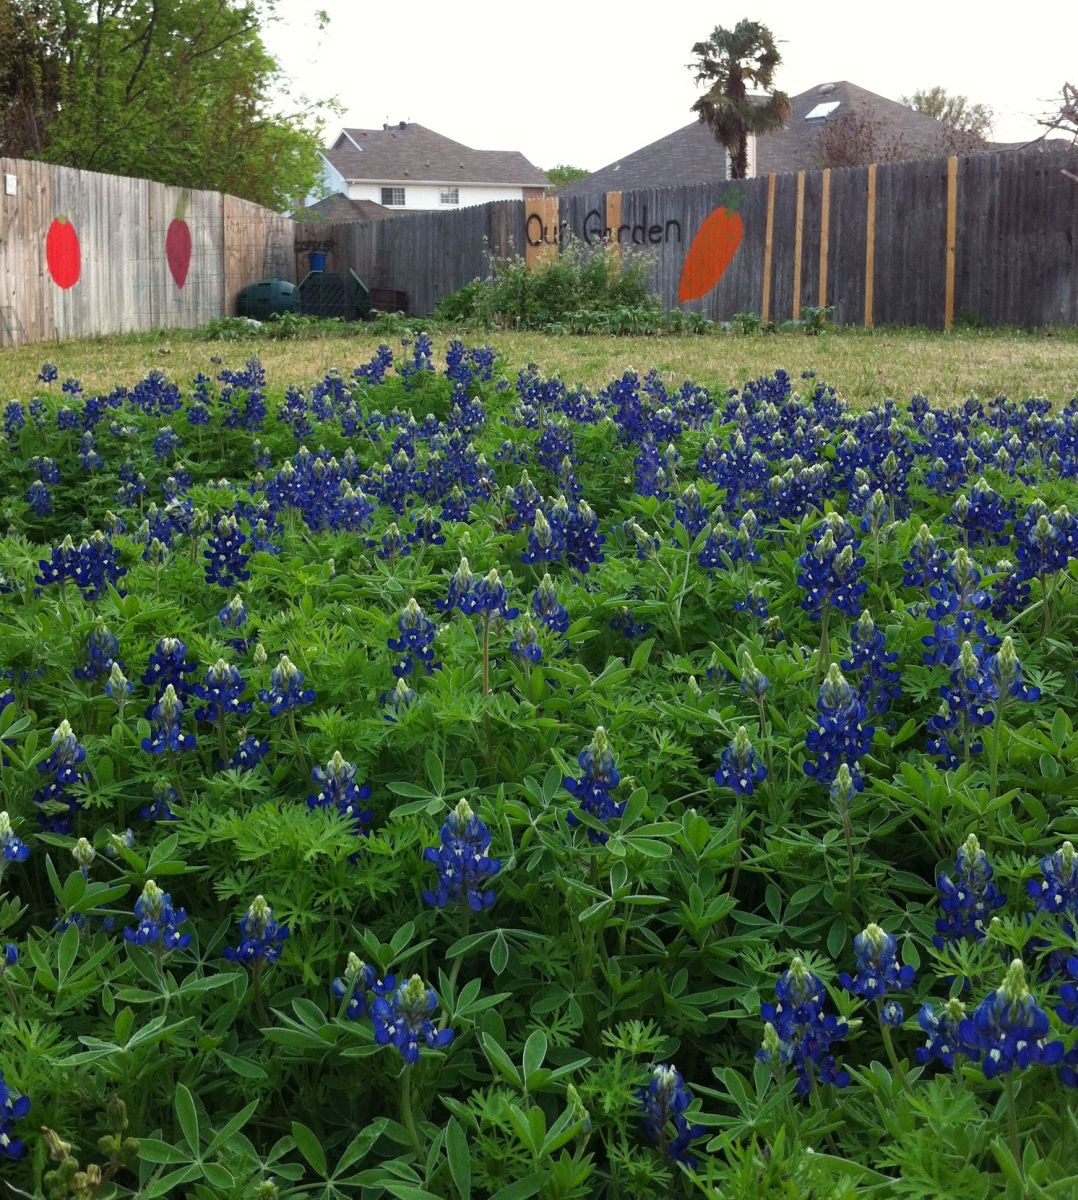 bluebonnets-the-state-flower-of-texas